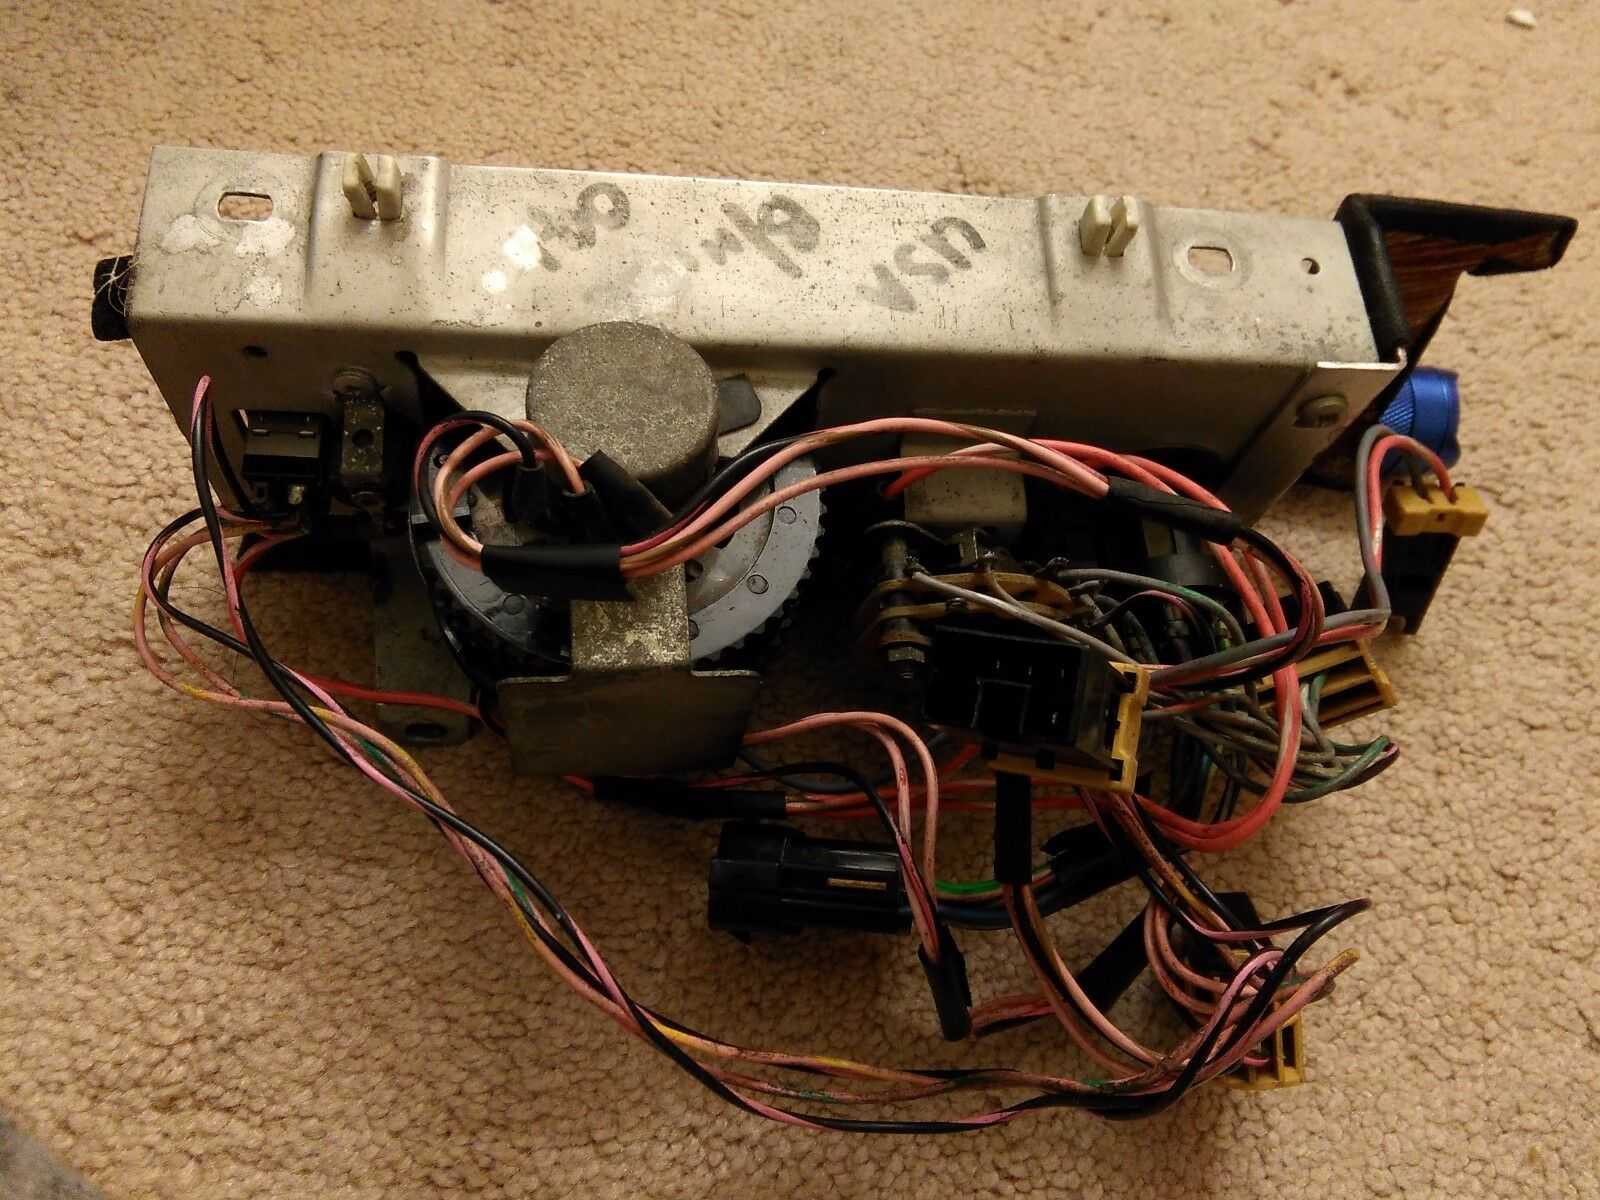 Used Rolls Royce Silver Spur Air Conditioning And Heater Parts For Sale Wiring A Switch Temperature Control Panel Hazard